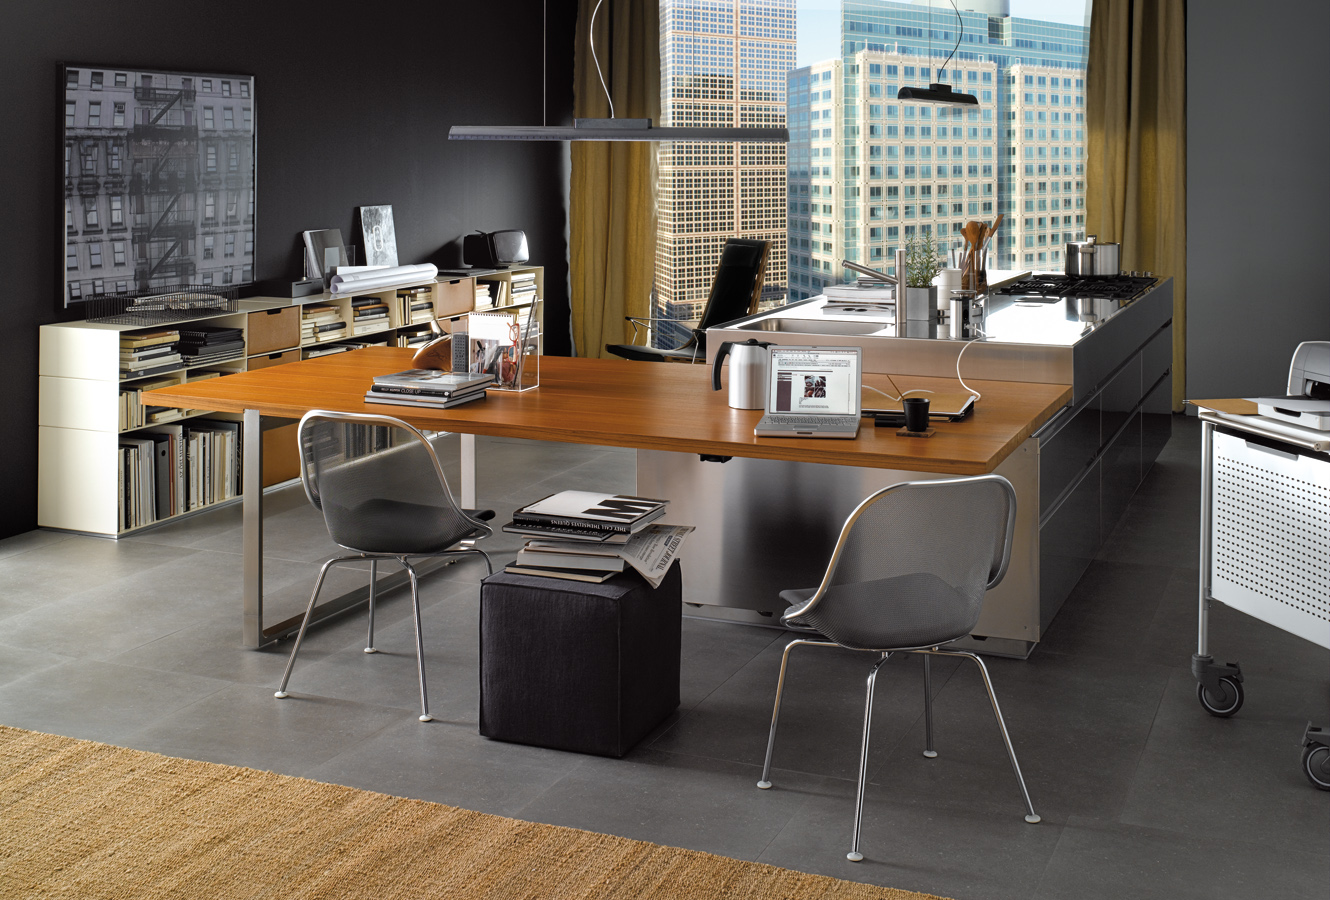 Modern italian kitchen design from arclinea - Design home office space easily ...